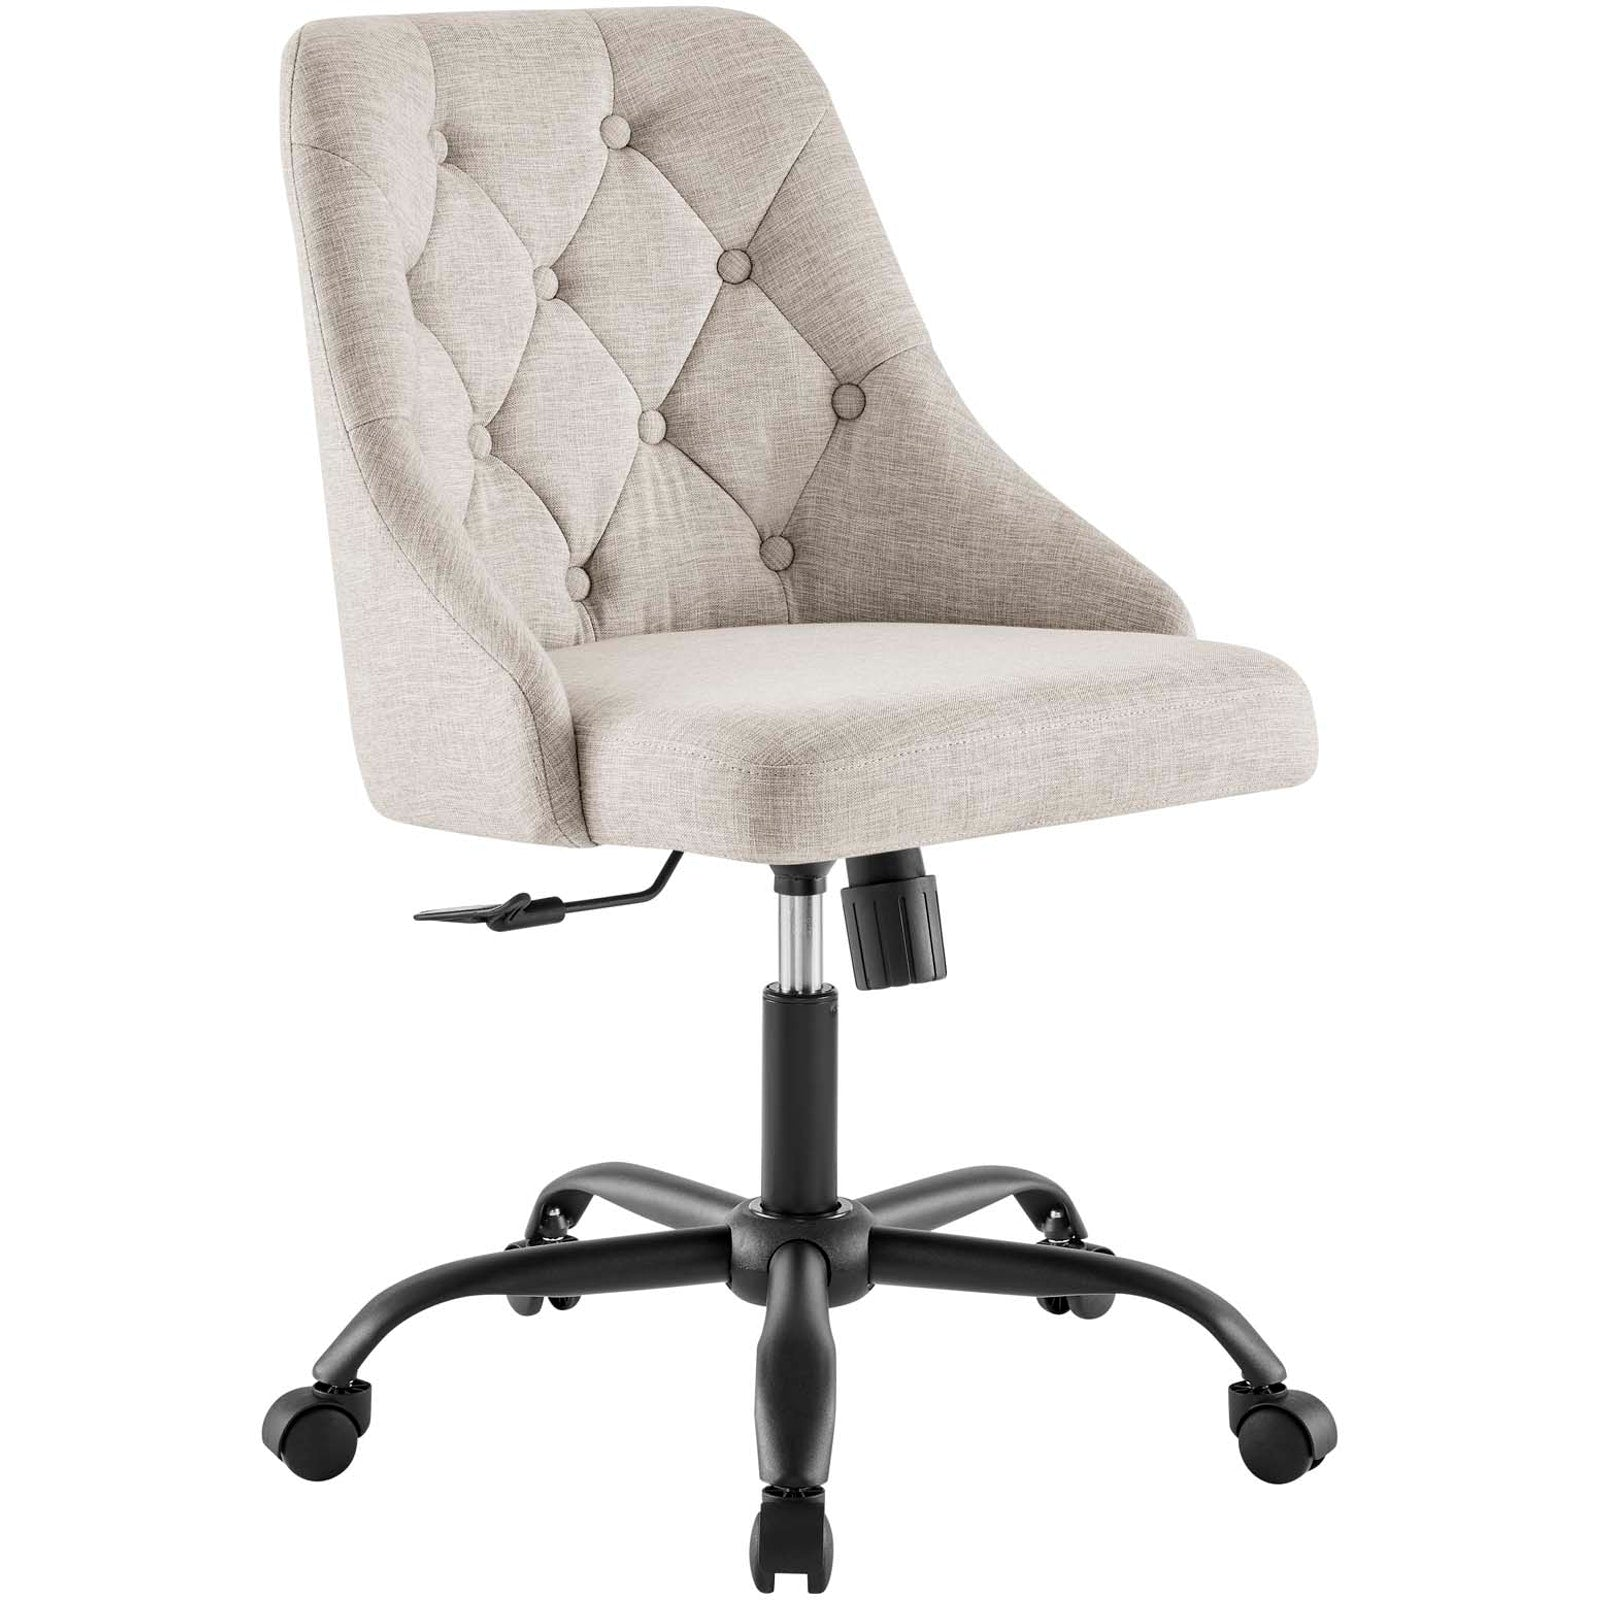 Distinct Tufted Swivel Upholstered Office Chair Black Beige Top Drawer Furniture